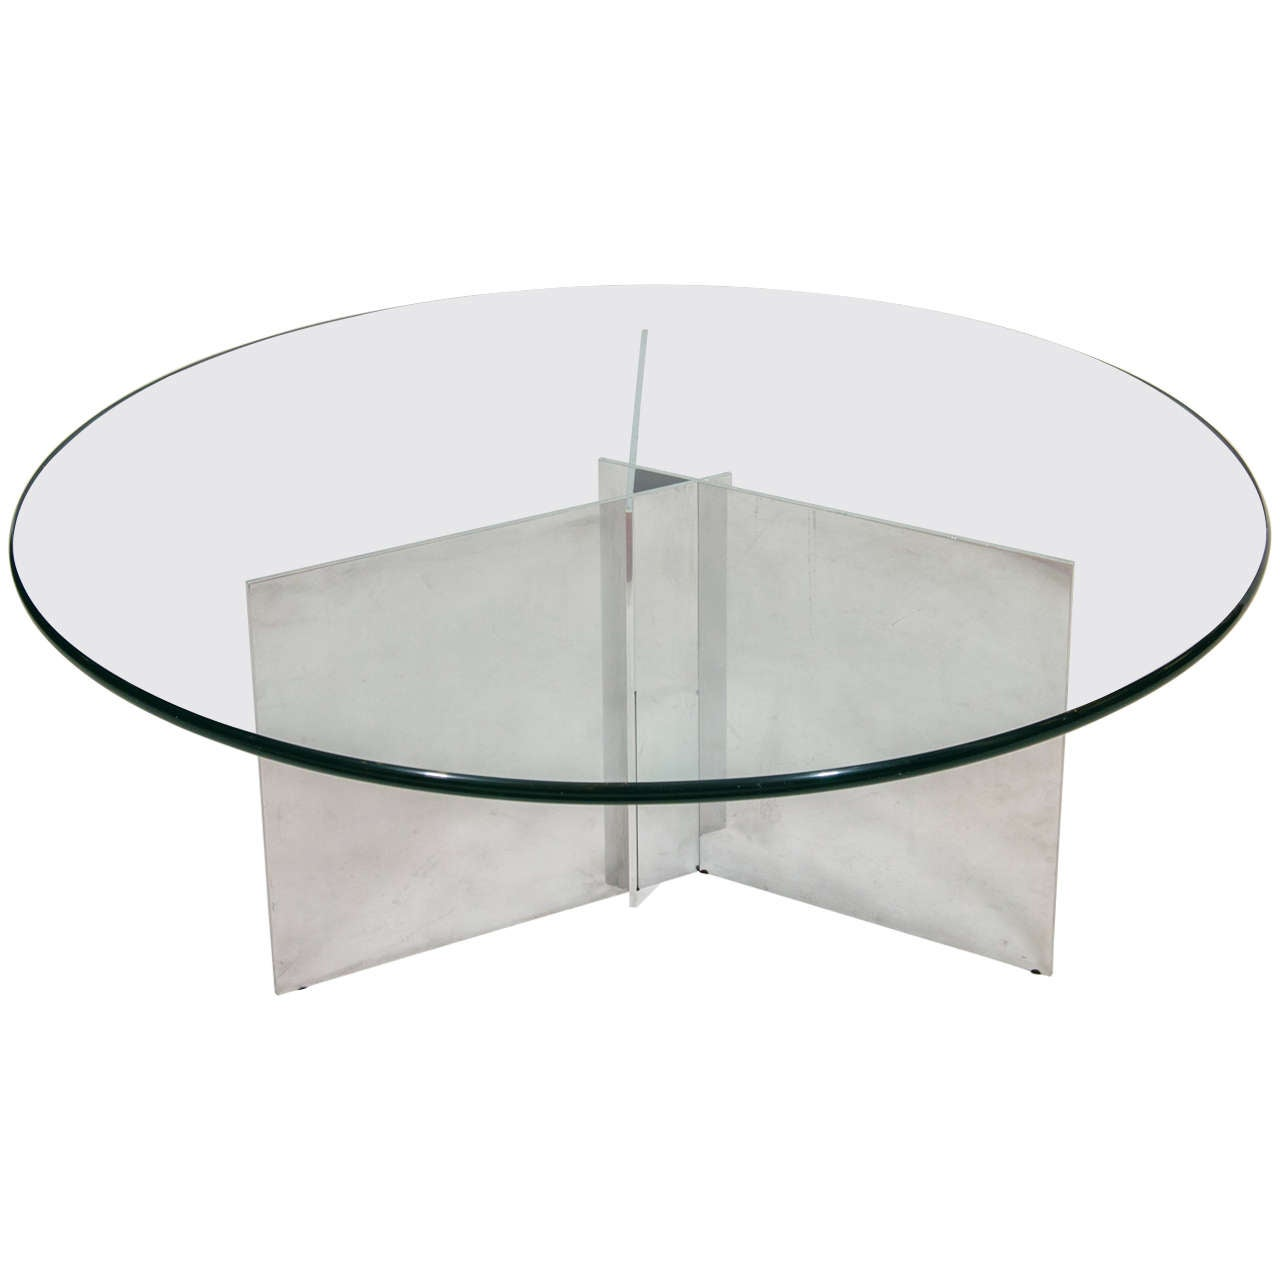 Paul Mayen Polished Aluminum Coffee Table For Sale At 1stdibs